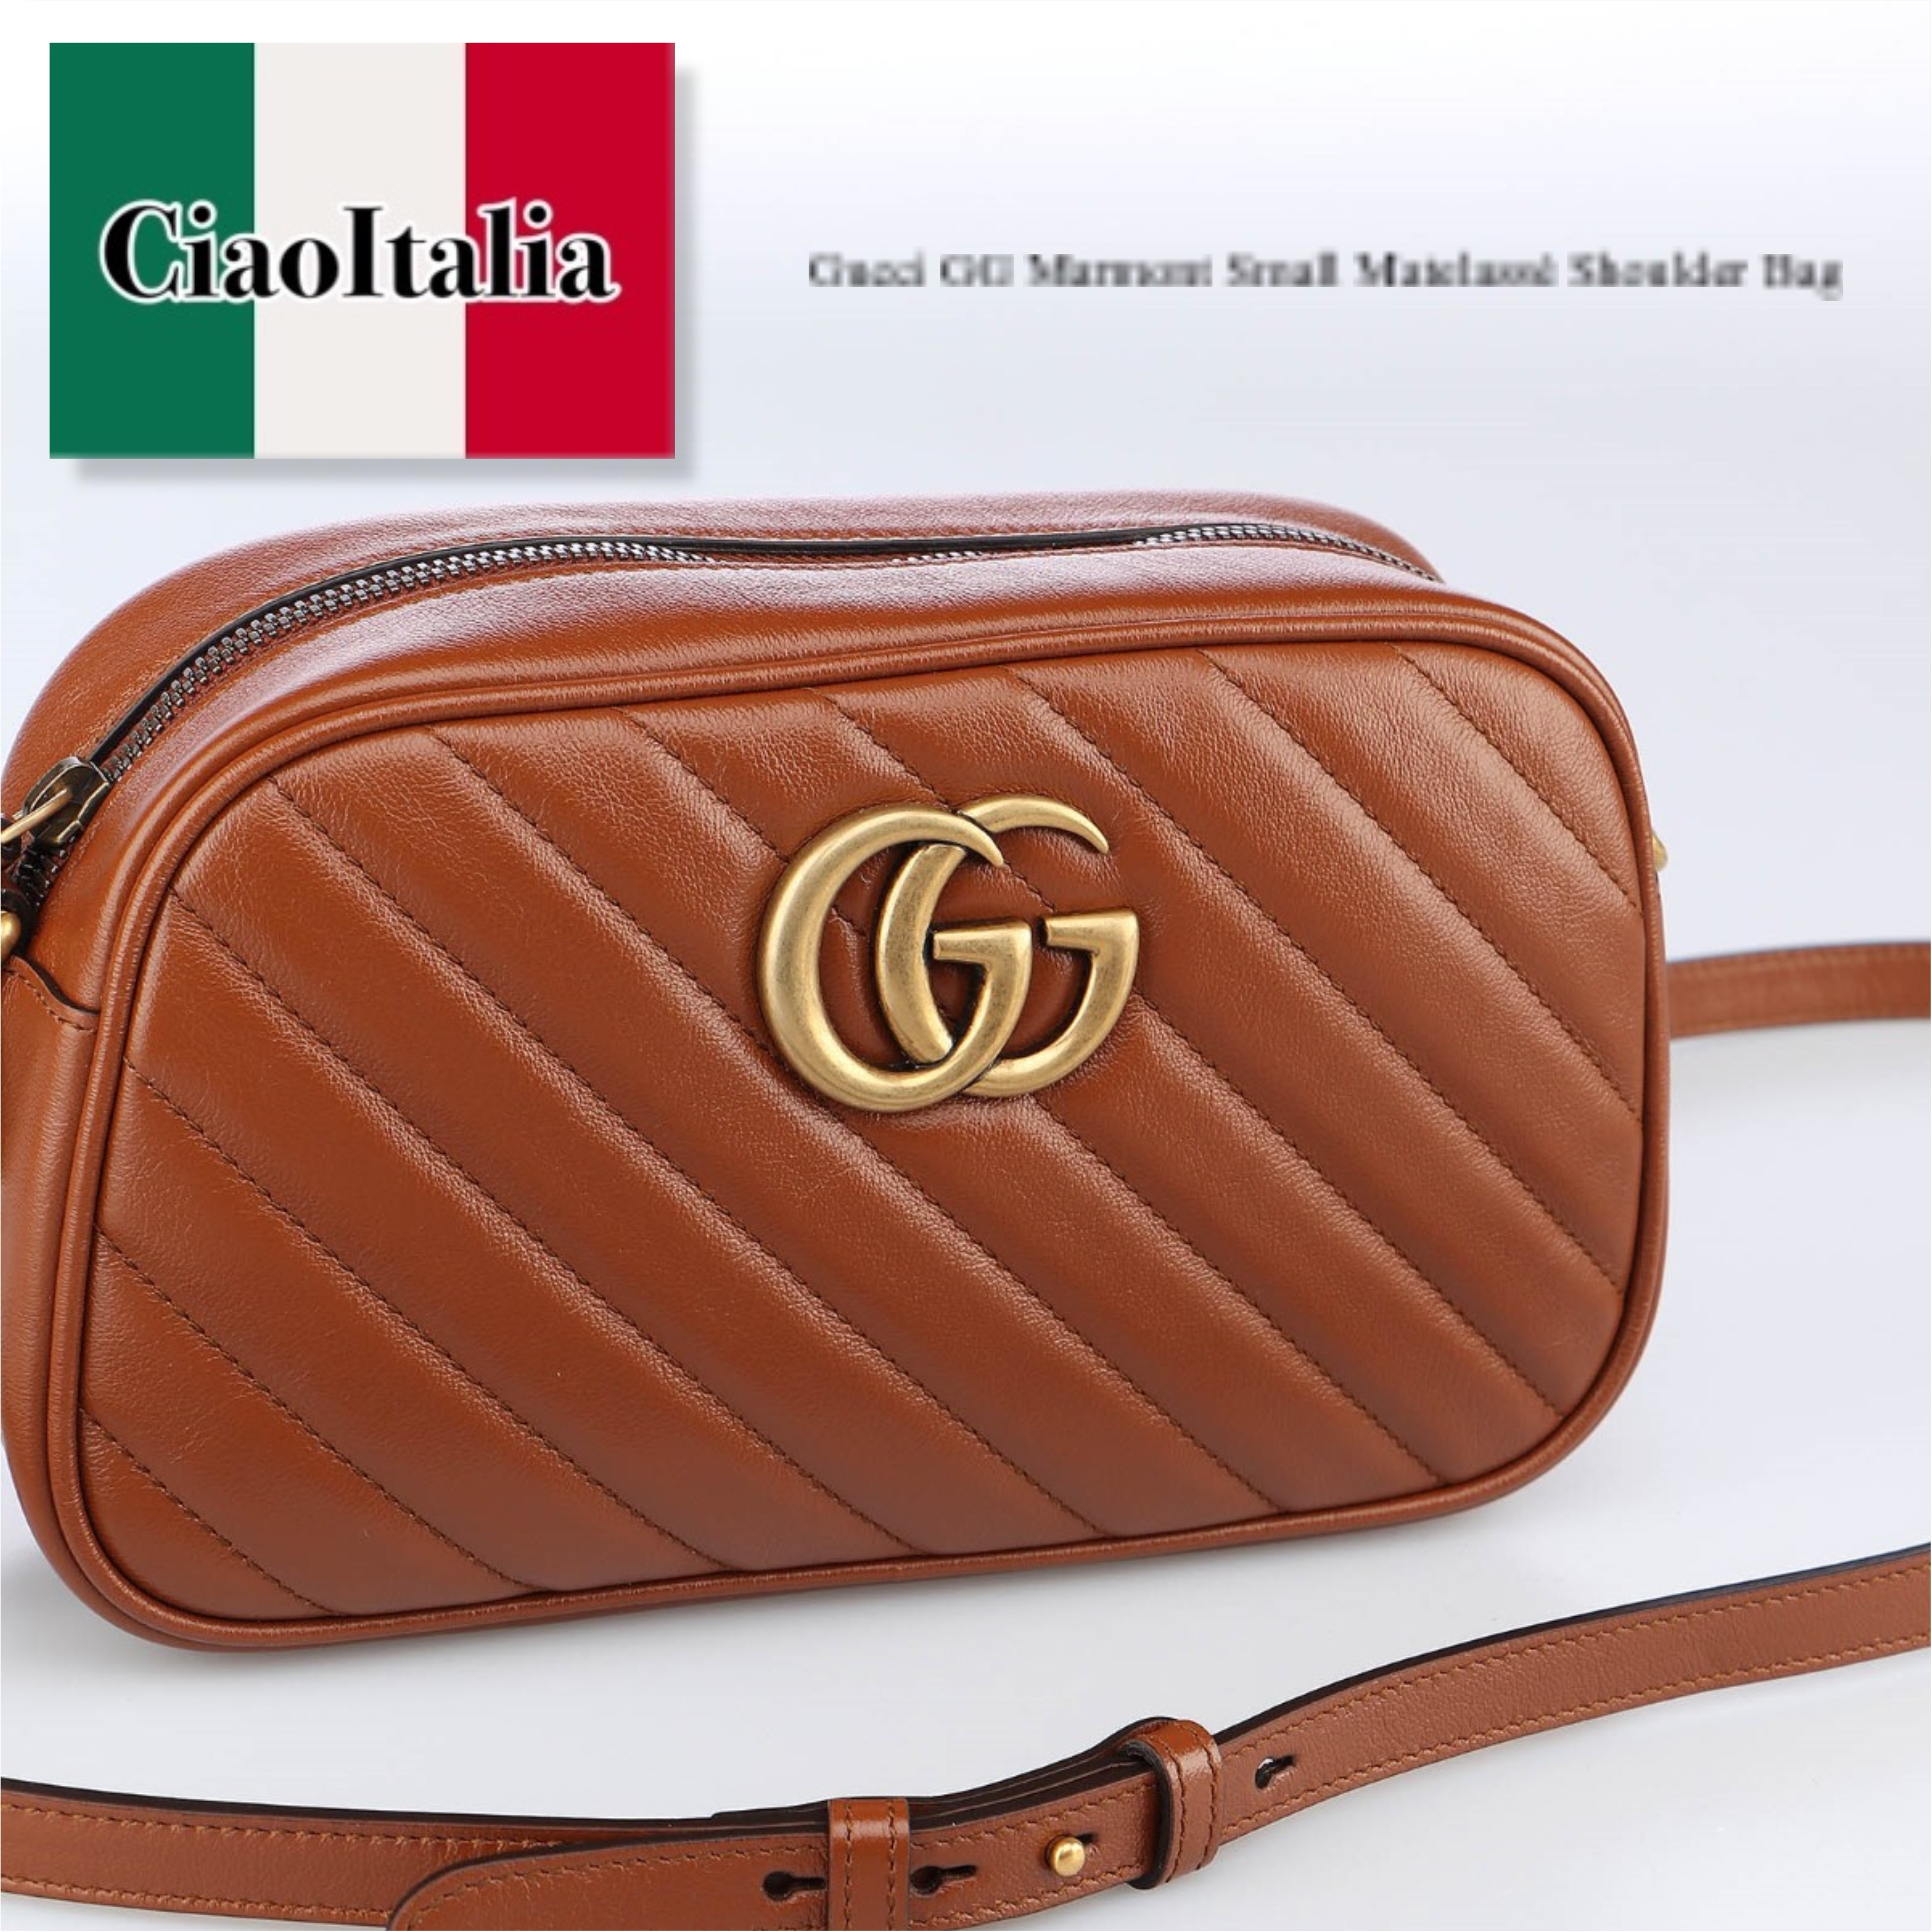 Gucci GG Marmont Small Matelasse Shoulder Bag (GUCCI/ショルダーバッグ・ポシェット) 4476320OLFT2535  447632 0OLFT 2535  447632 0OLFT